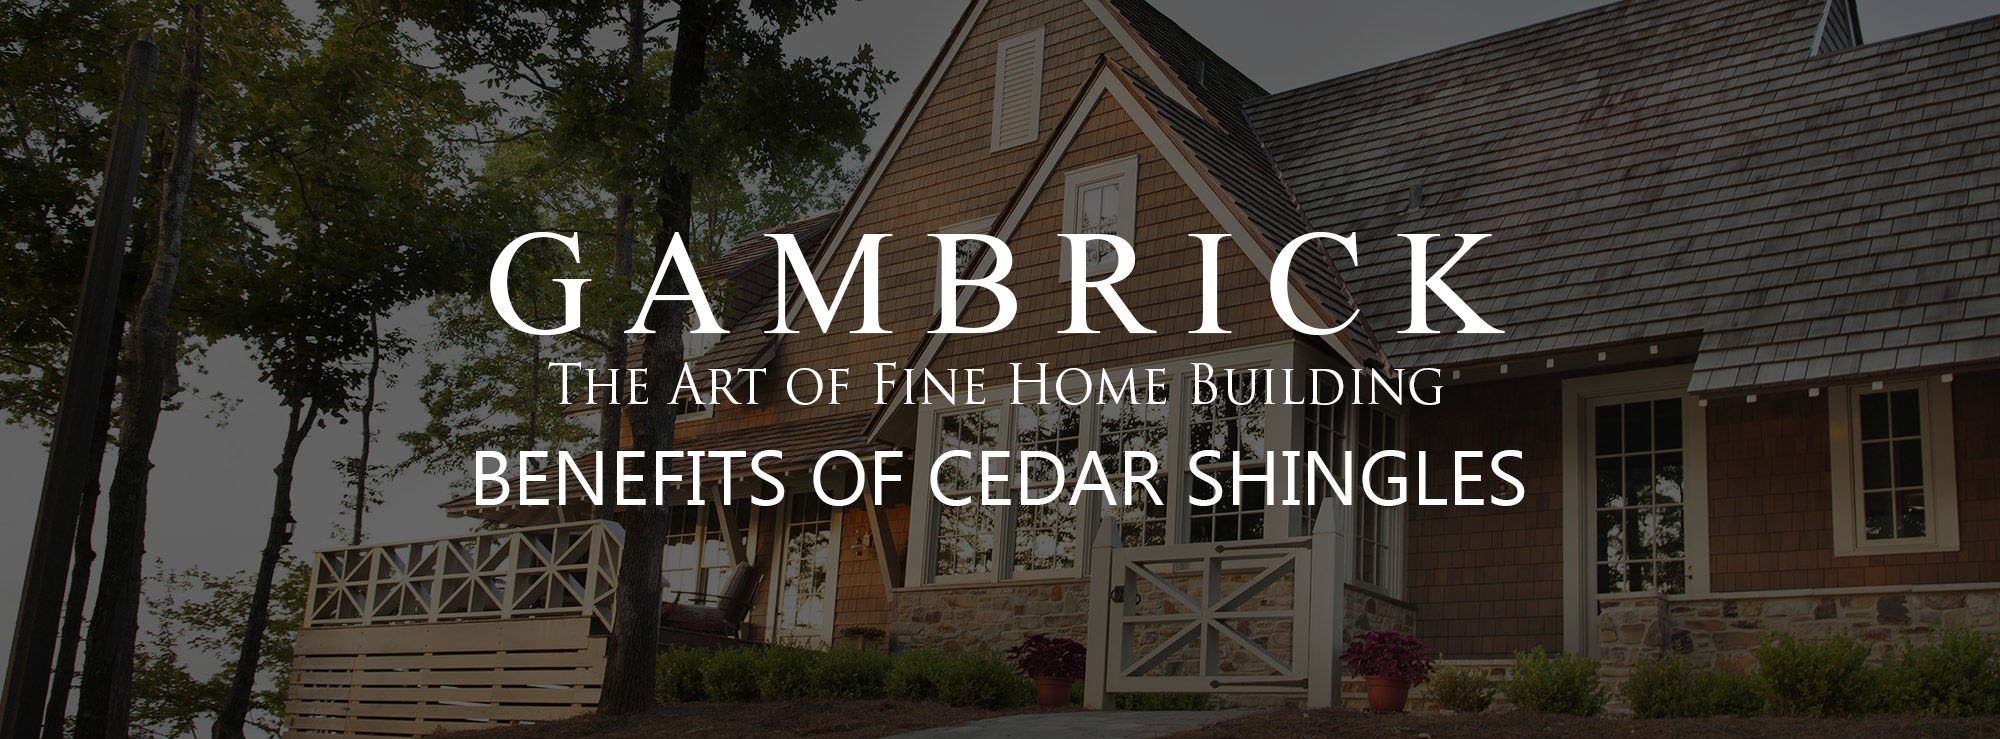 benefits of cedar shingles and how they're made banner beautiful waterfront home with cedar shake siding